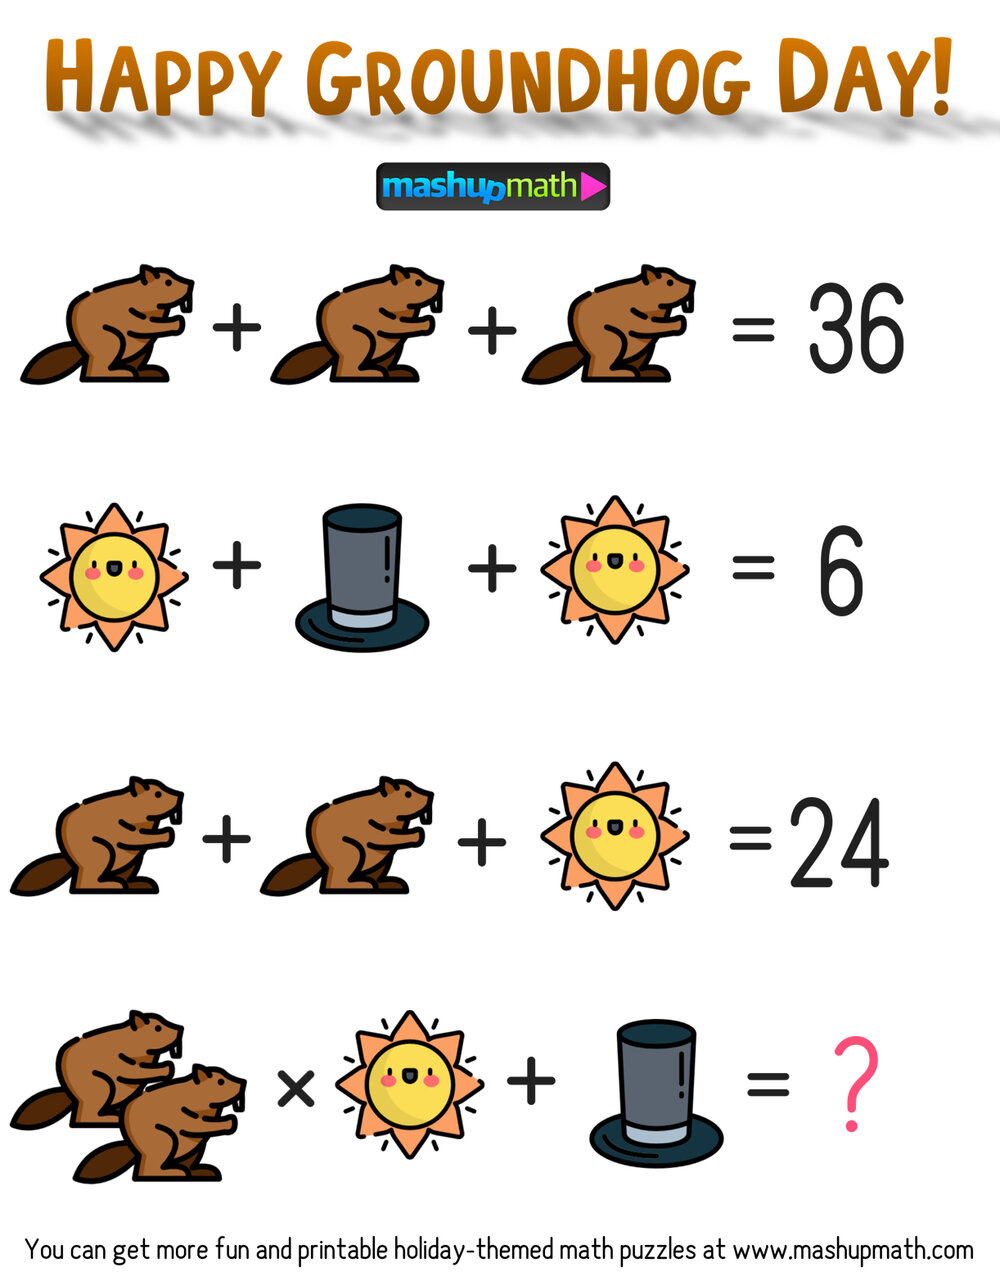 Free Groundhog Day Math Puzzle For Grades 3 8 Mashup Math In 2021 Maths Puzzles Math Logic Puzzles Free Math